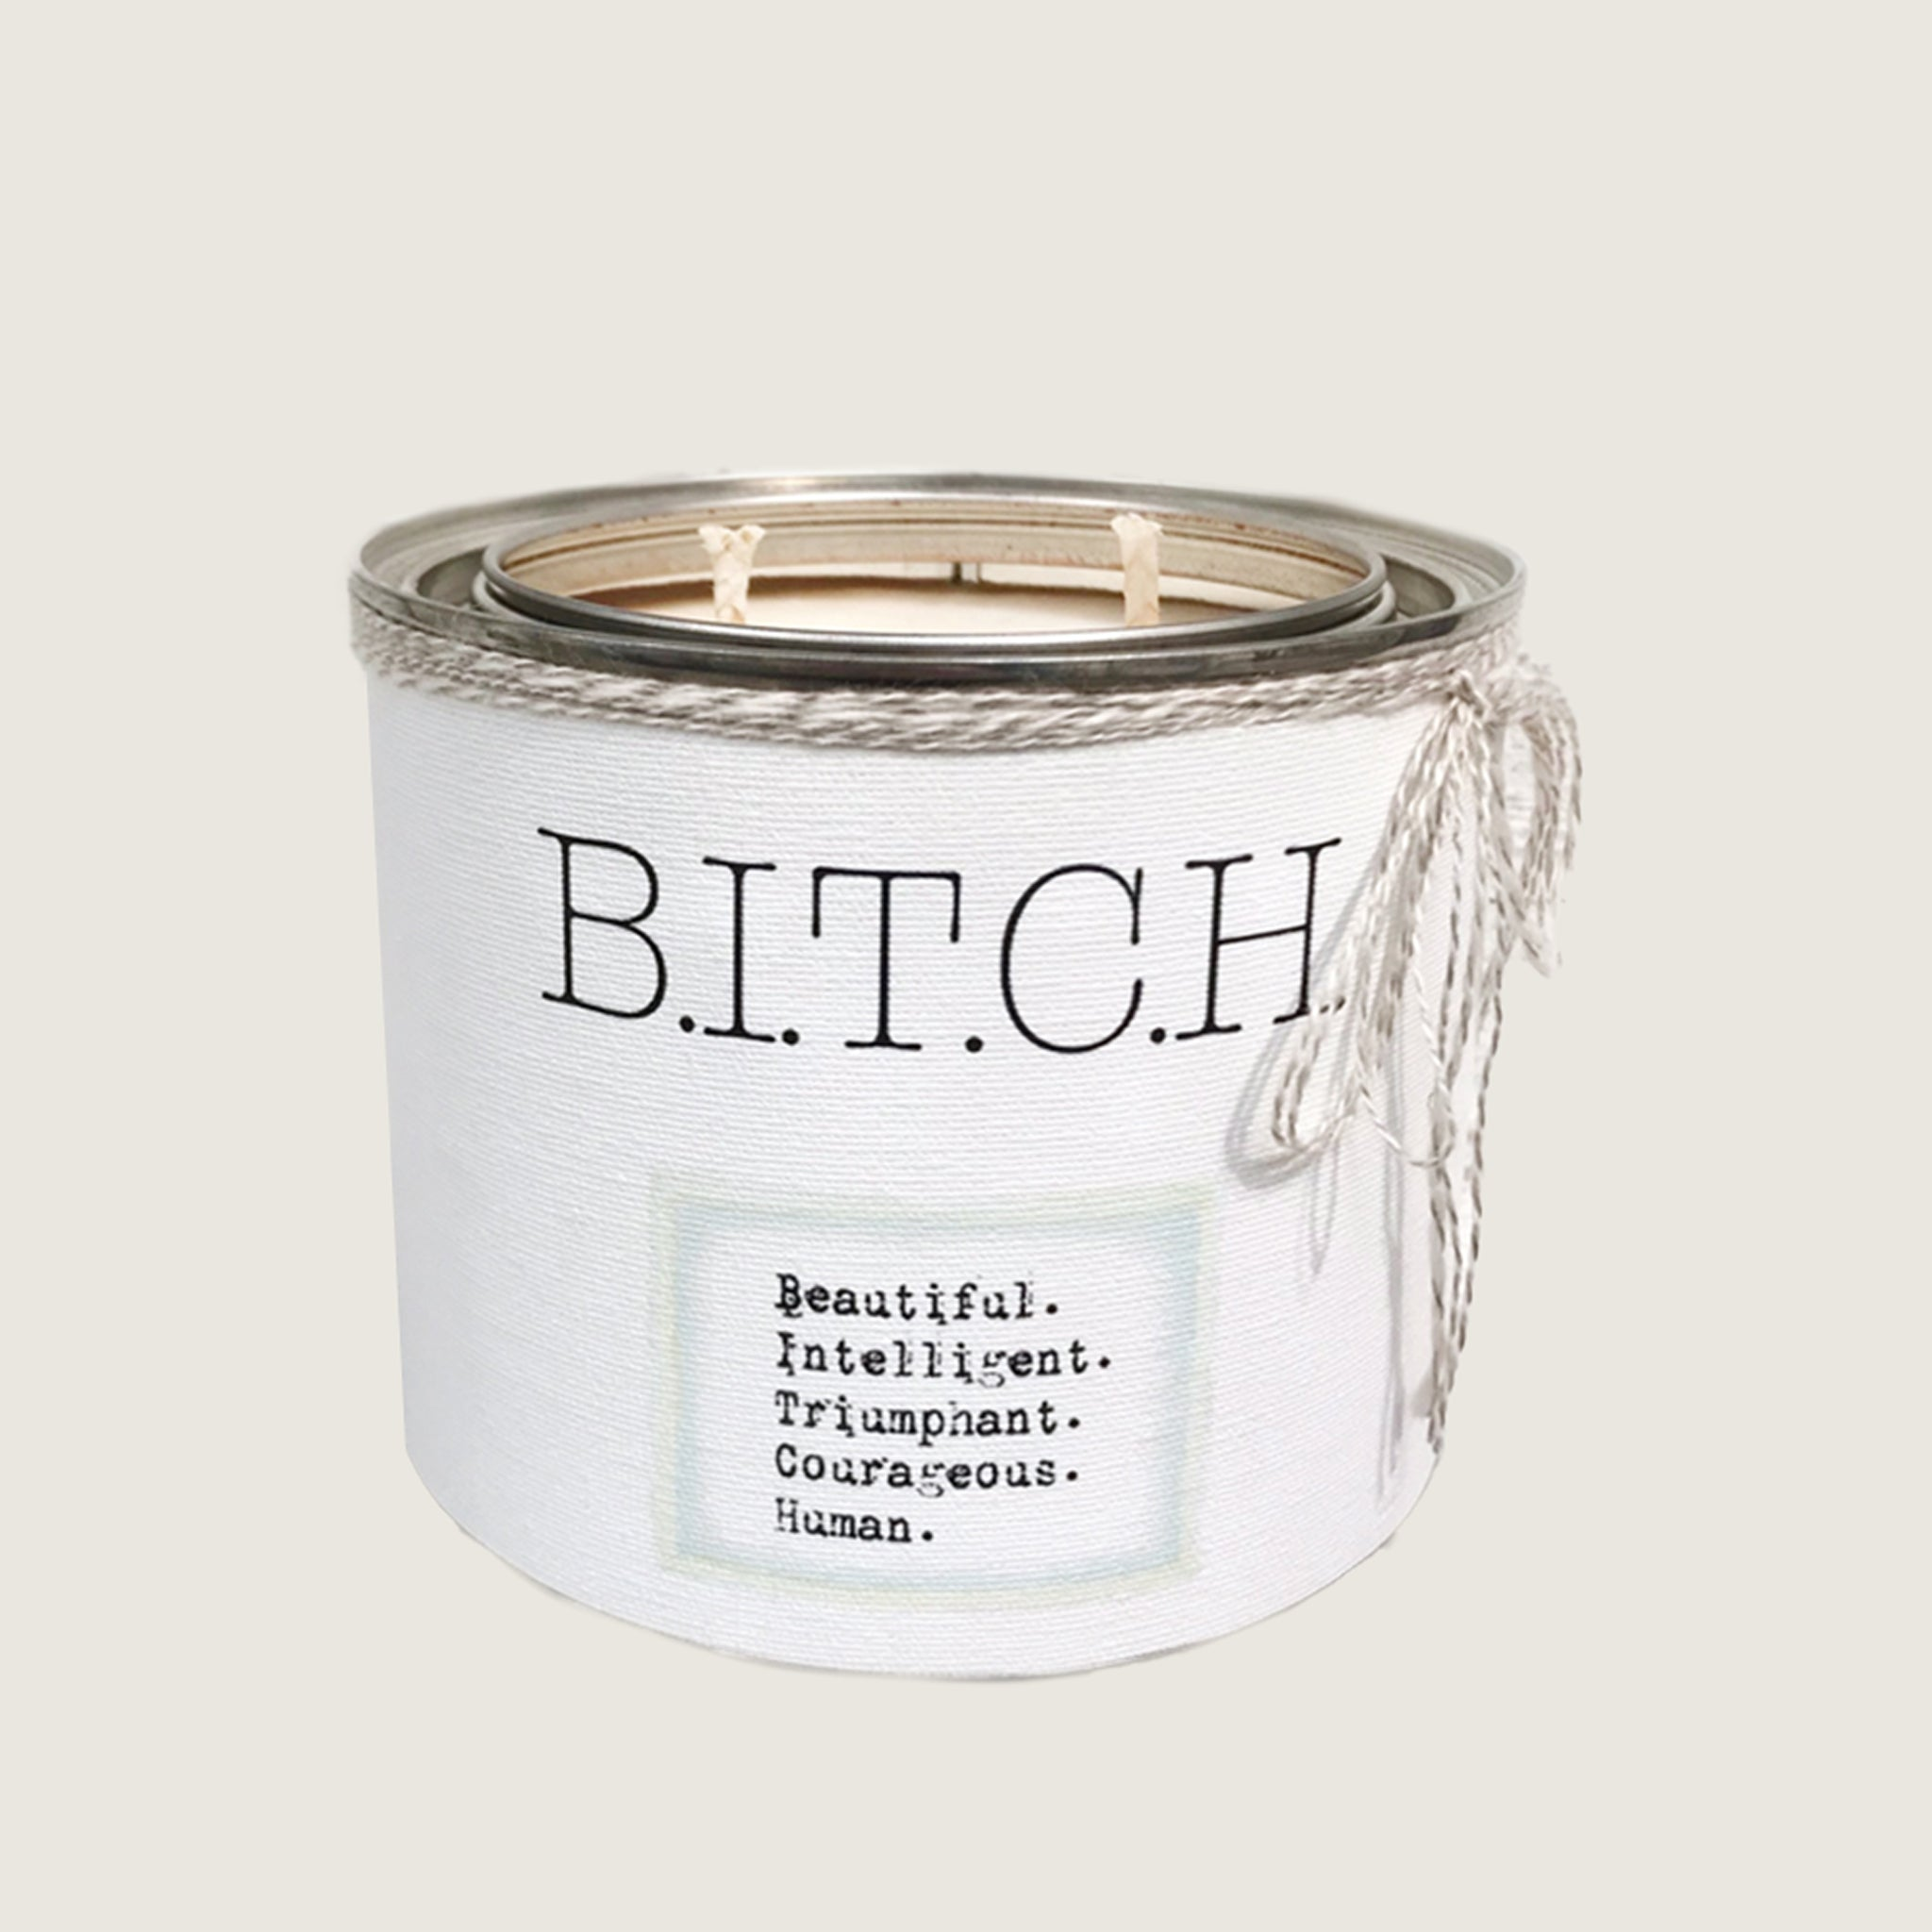 B.I.T.C.H Candle - Blackbird General Store